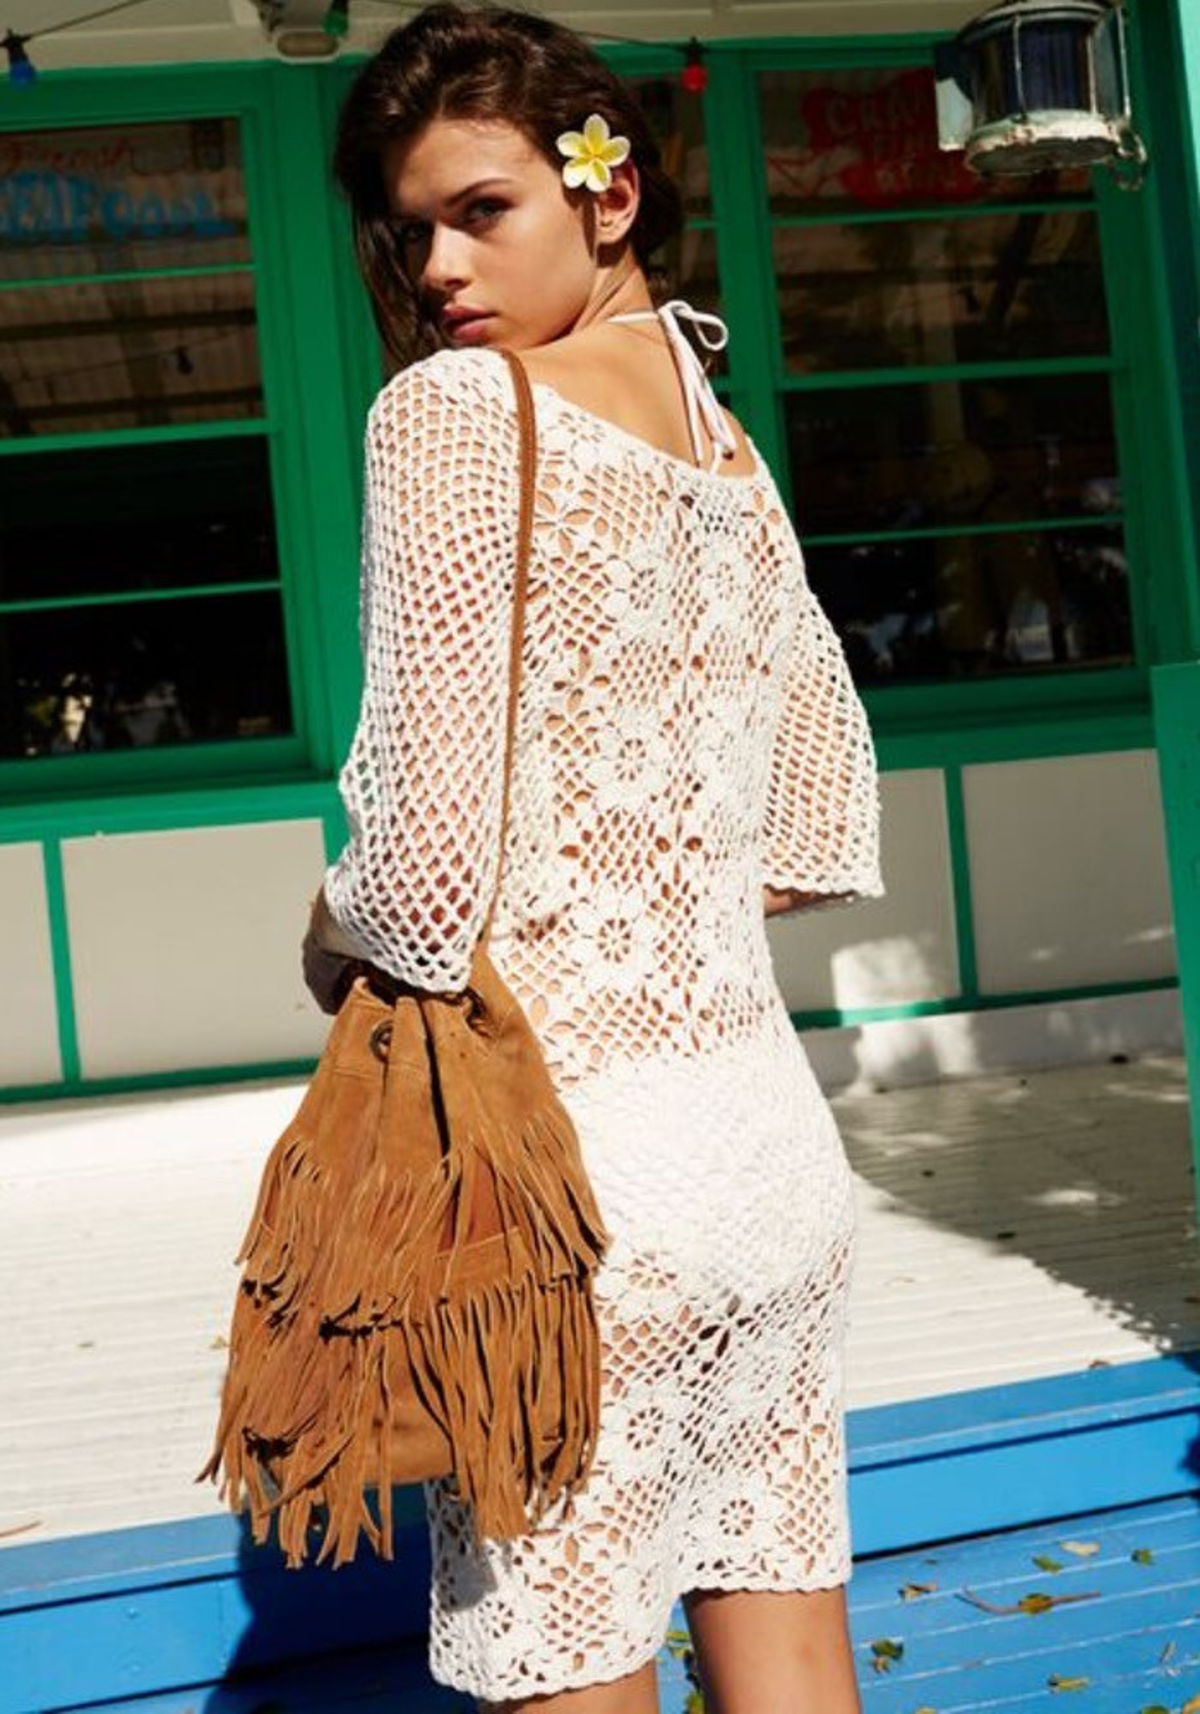 Headline for Fashion: Learn About Bohemian Fashion and How to Have a Boho Look